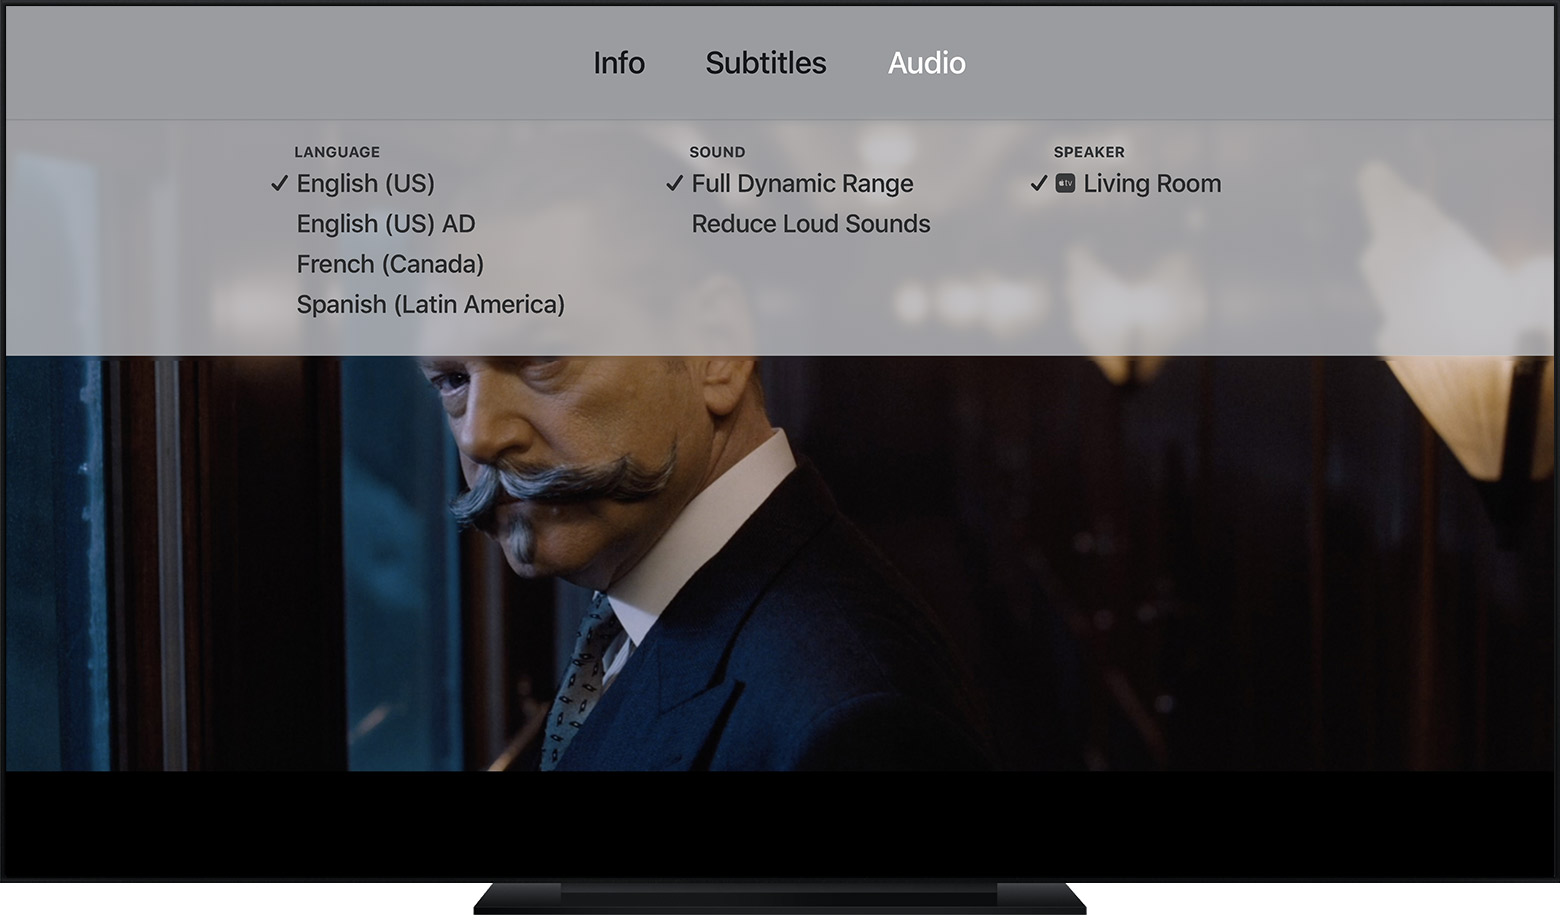 A TV showing the movie Murder on the Orient Express paused. The Apple TV Audio and Subtitles menu visible in the upper part of the screen.